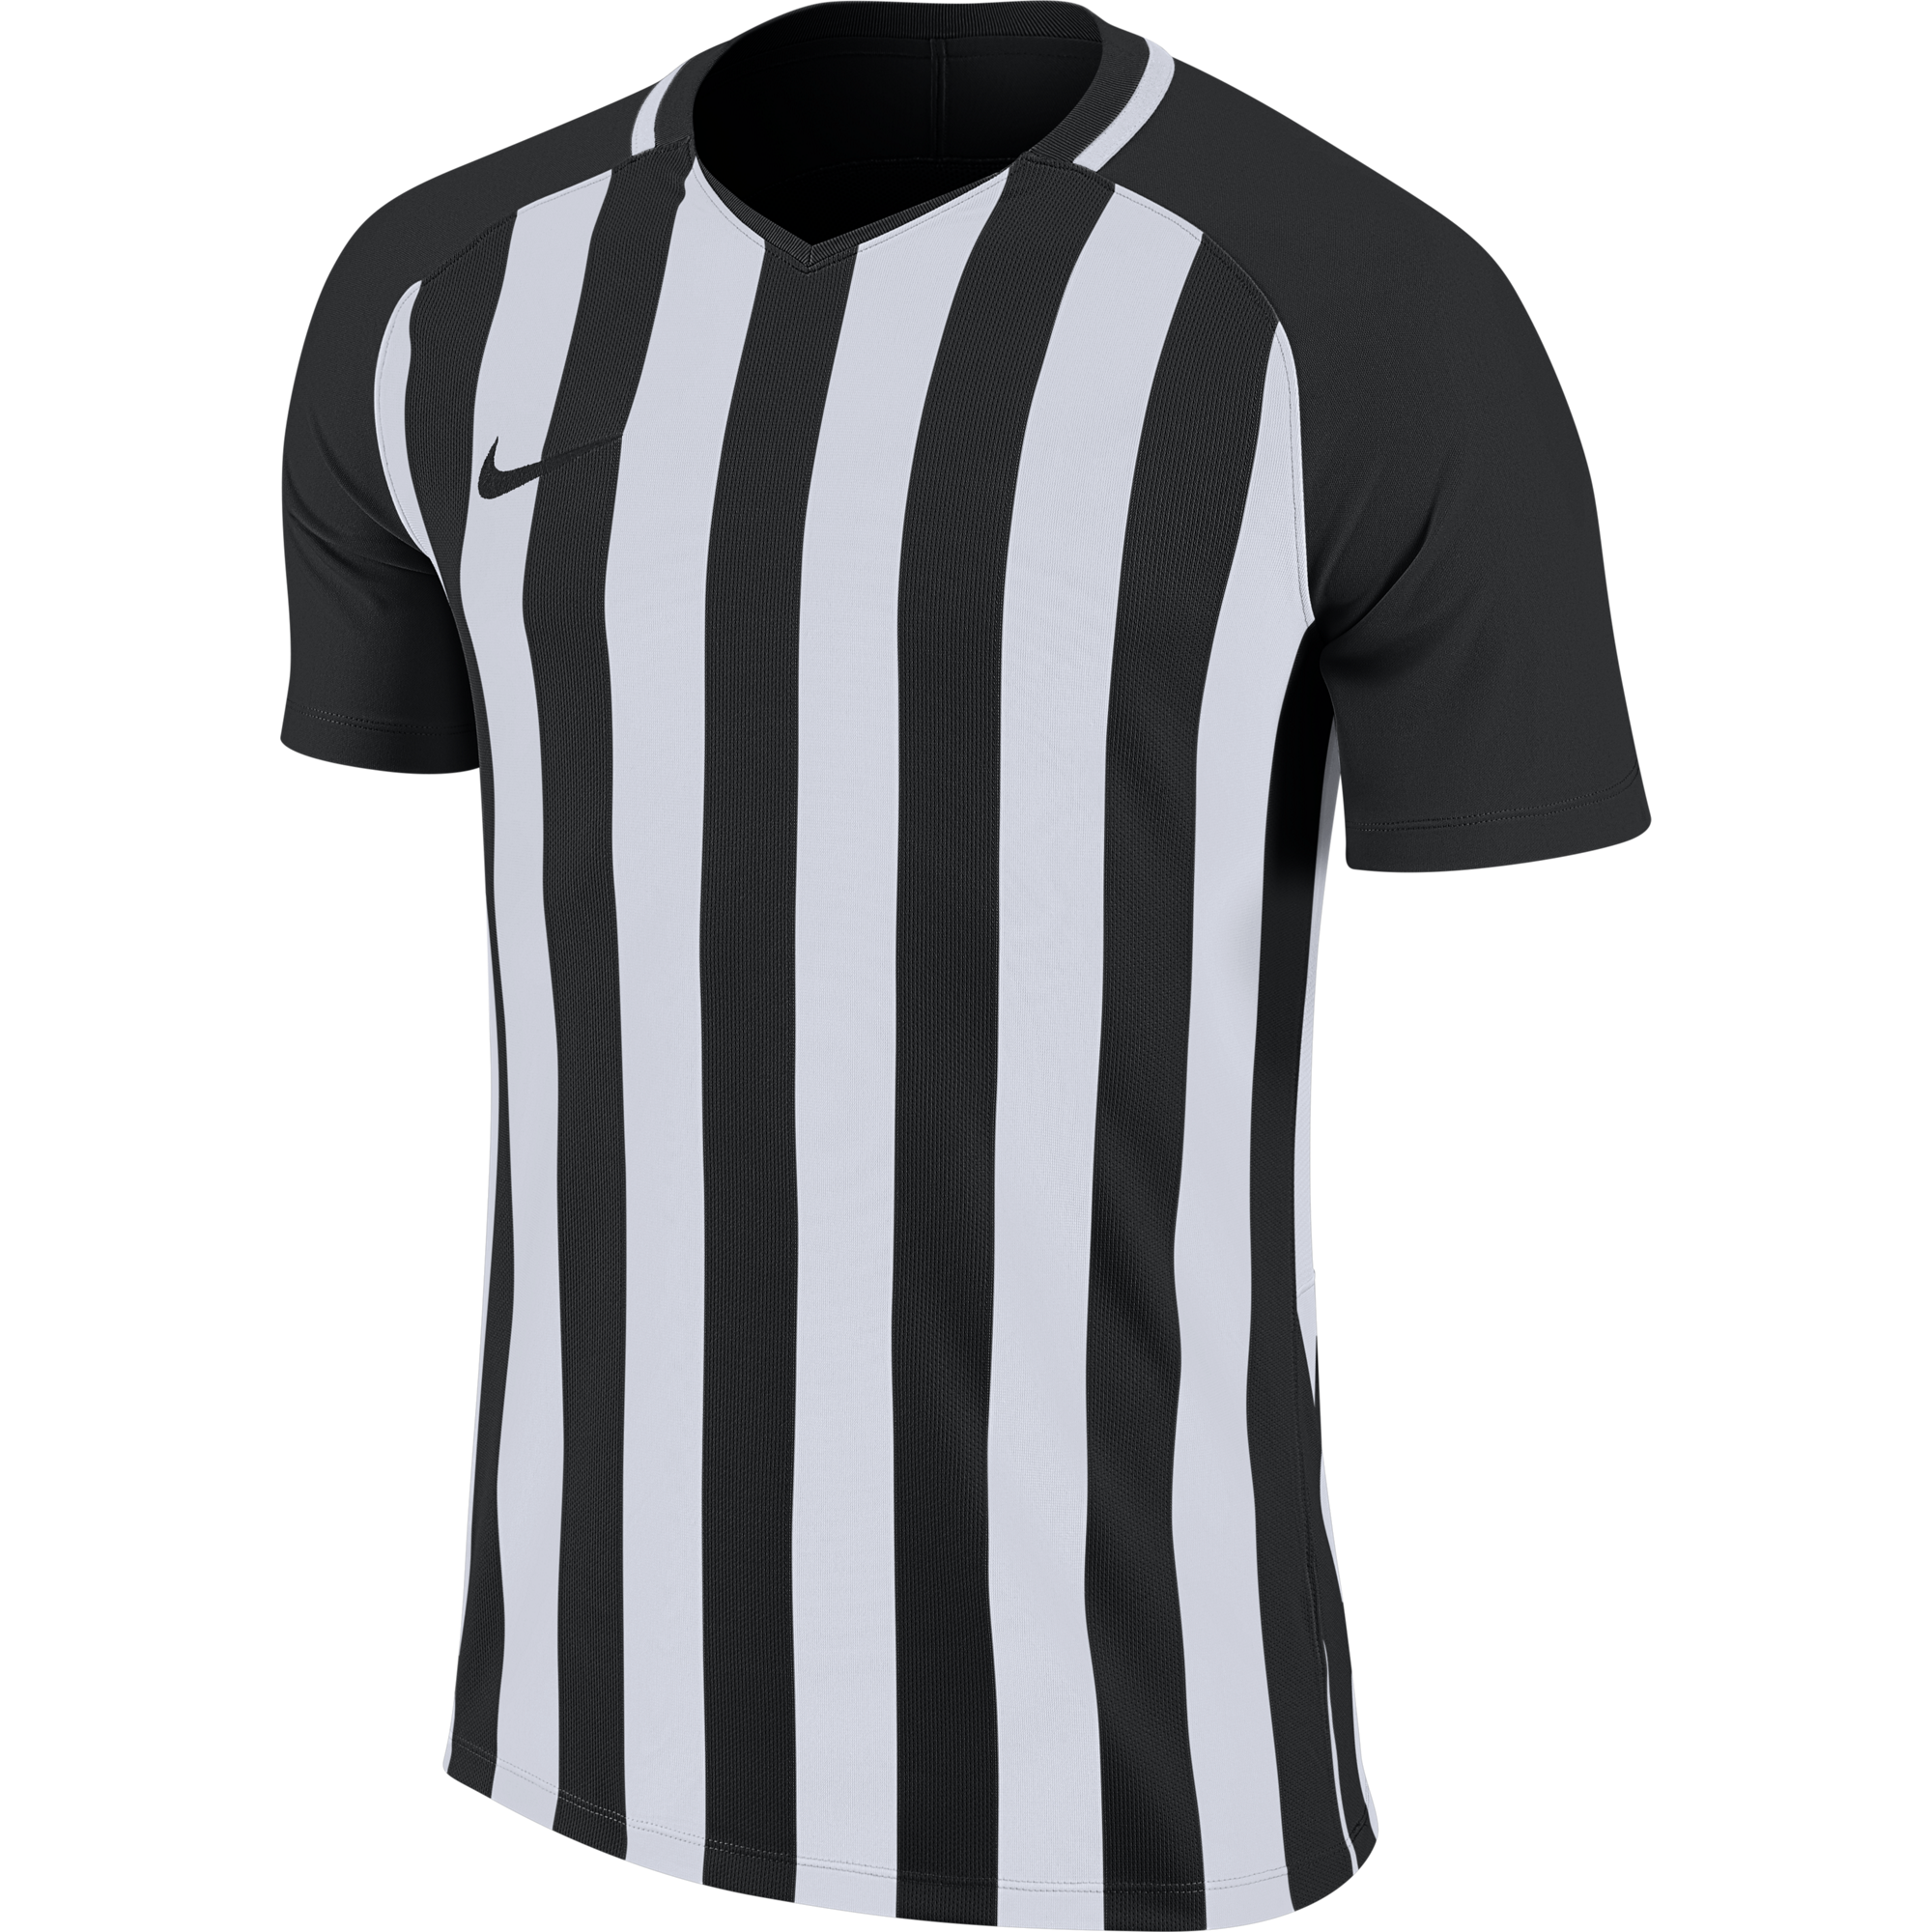 Striped-Division-Jersey-Black/White